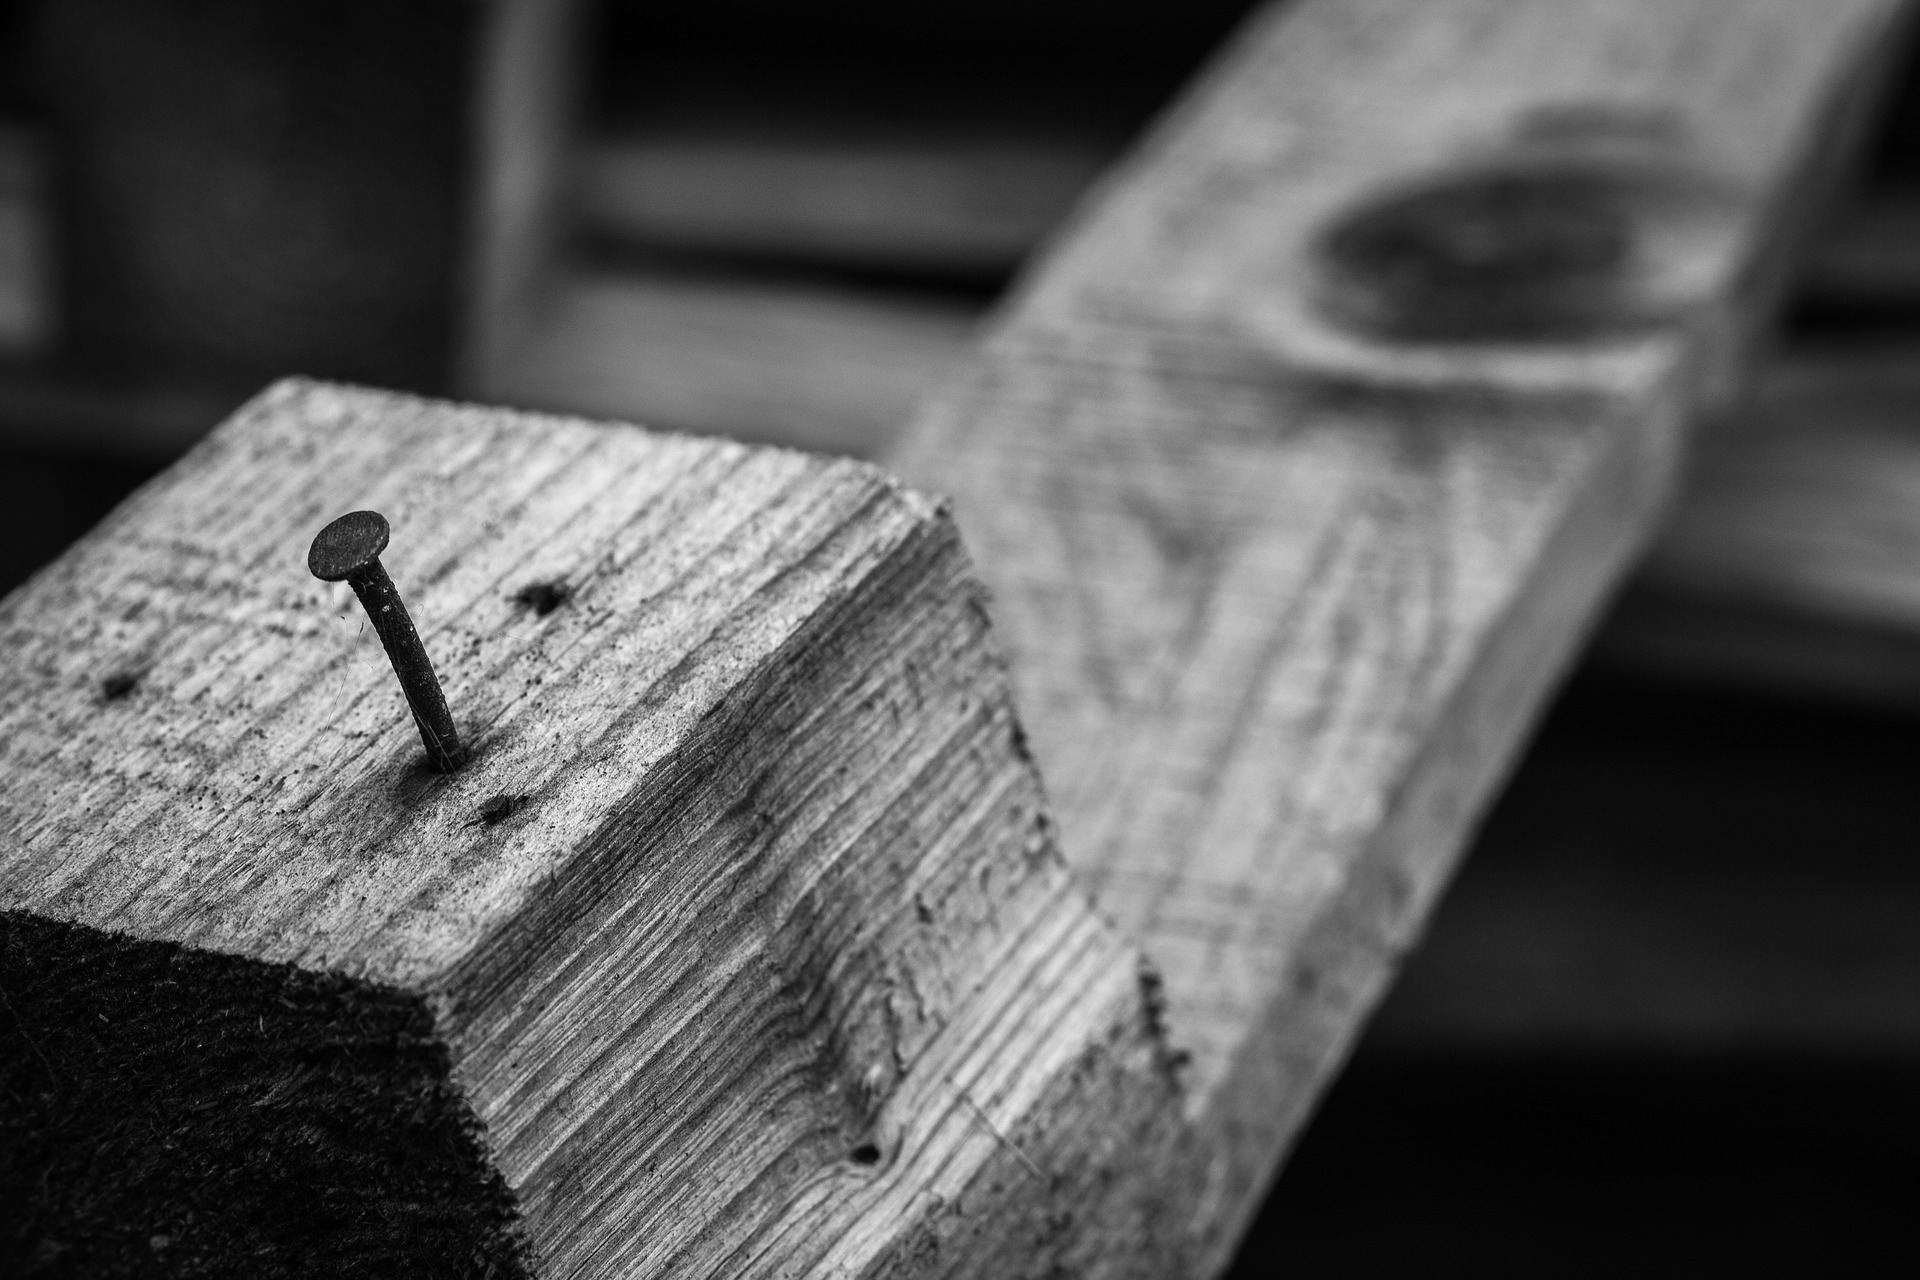 Wooden board with nail